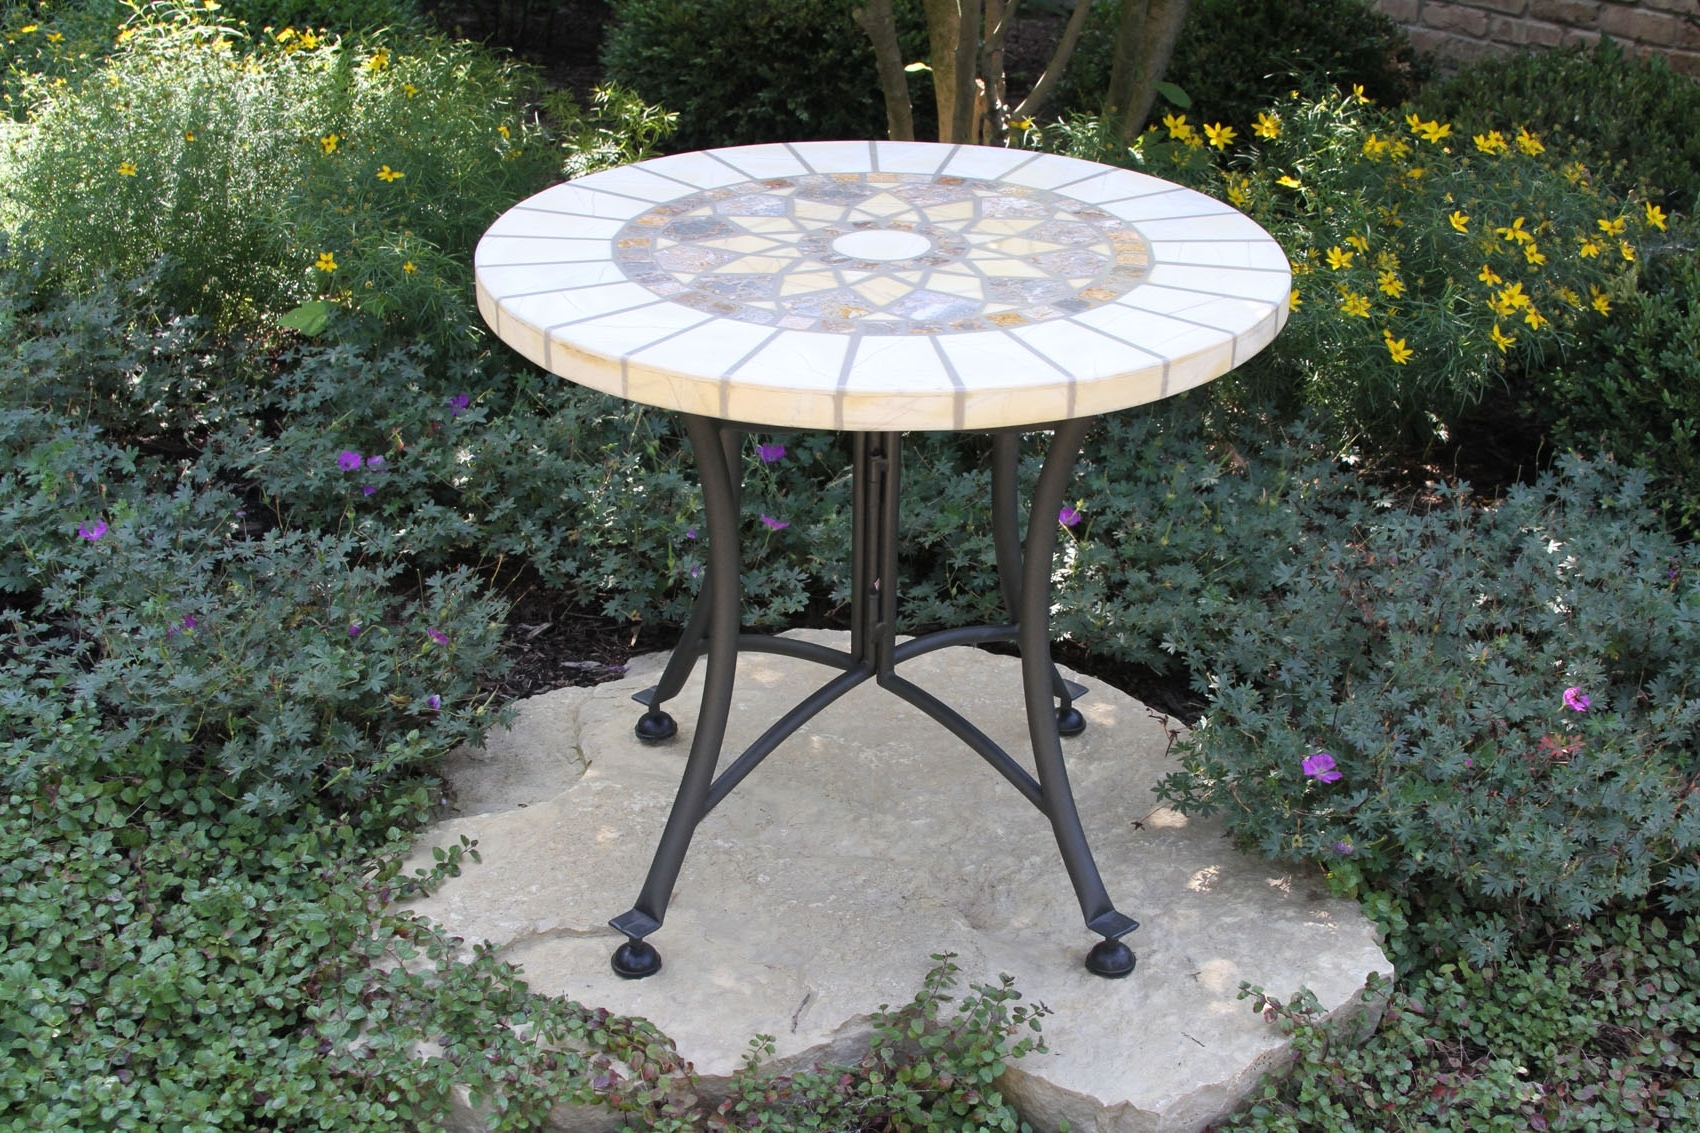 Most Recently Released Stone & The Hardwoods Collection From Outdoor Interiors With Regard To Patio Umbrellas With Accent Table (View 9 of 20)